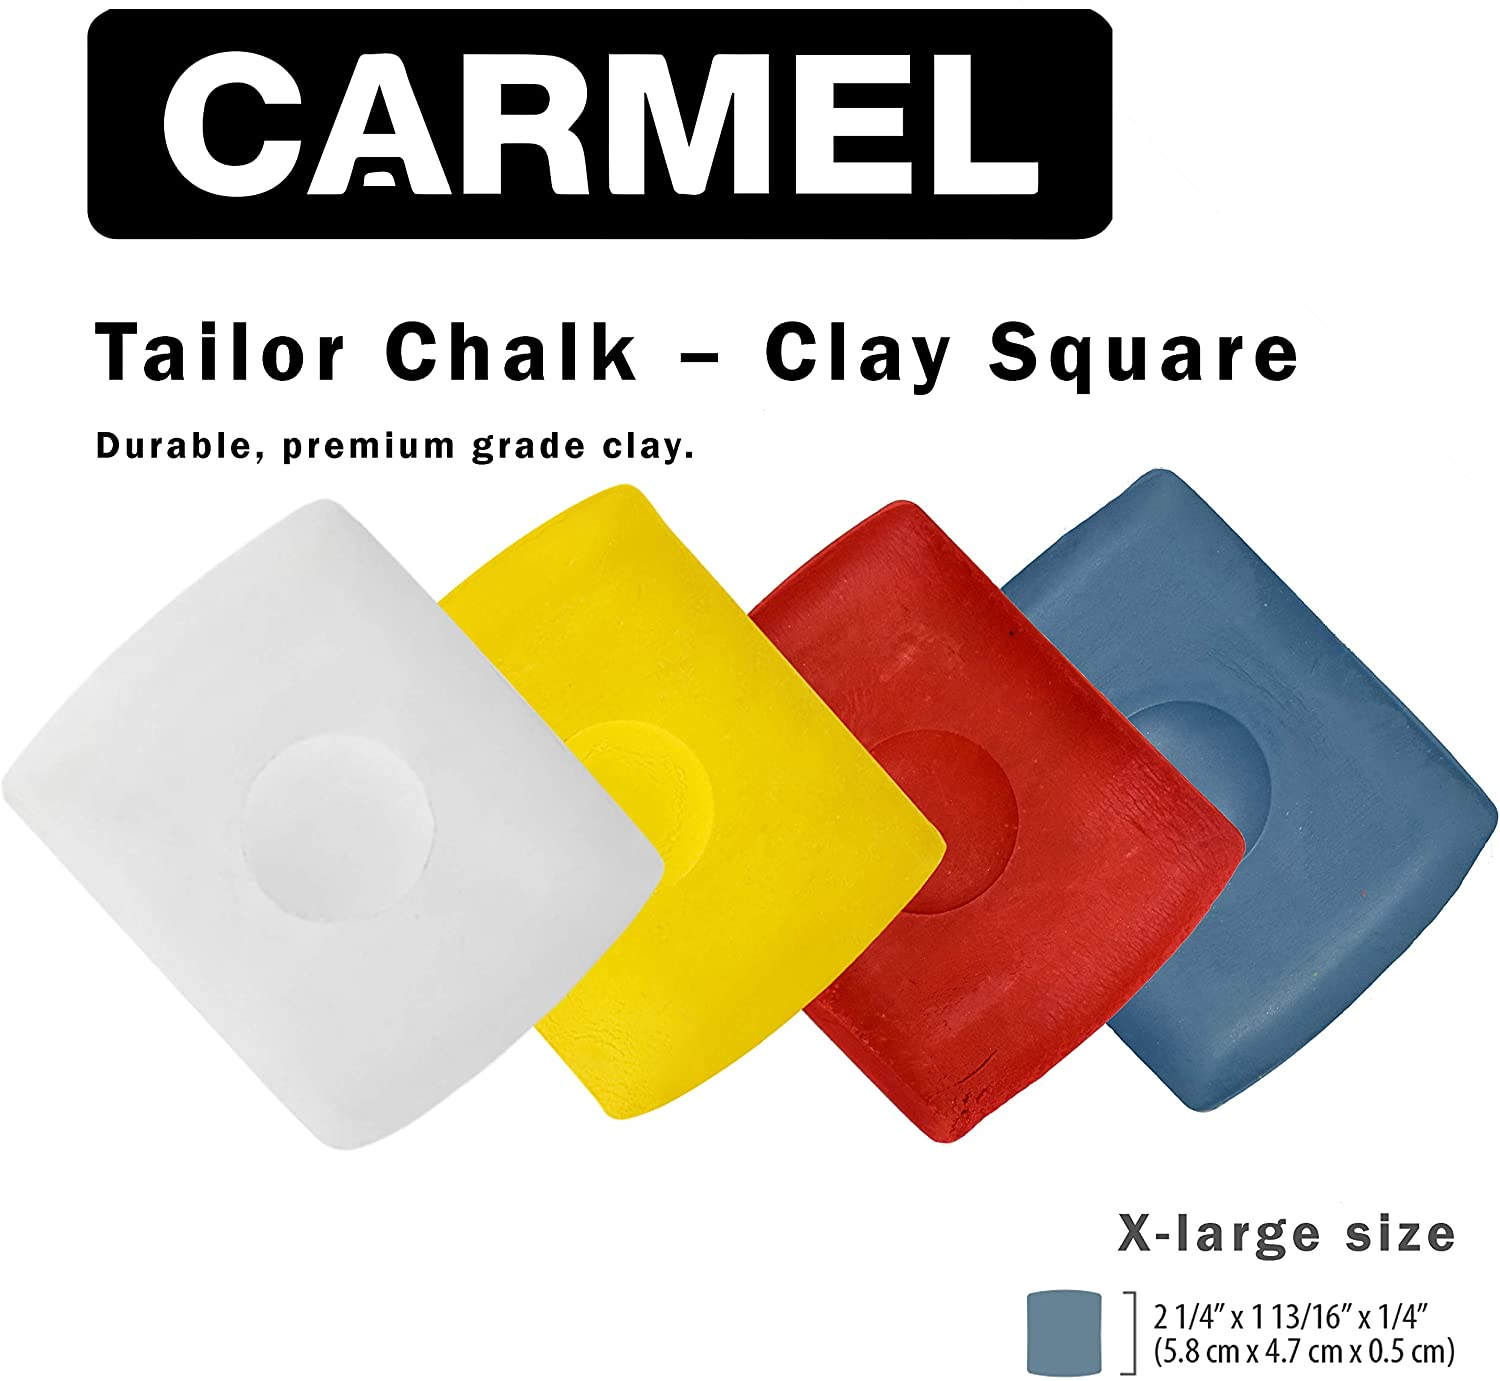 Carmel Square Clay Tailor Chalk, Premium Grade Clay Chalk for Marking Textiles (Mixed Colors, Box of 20)